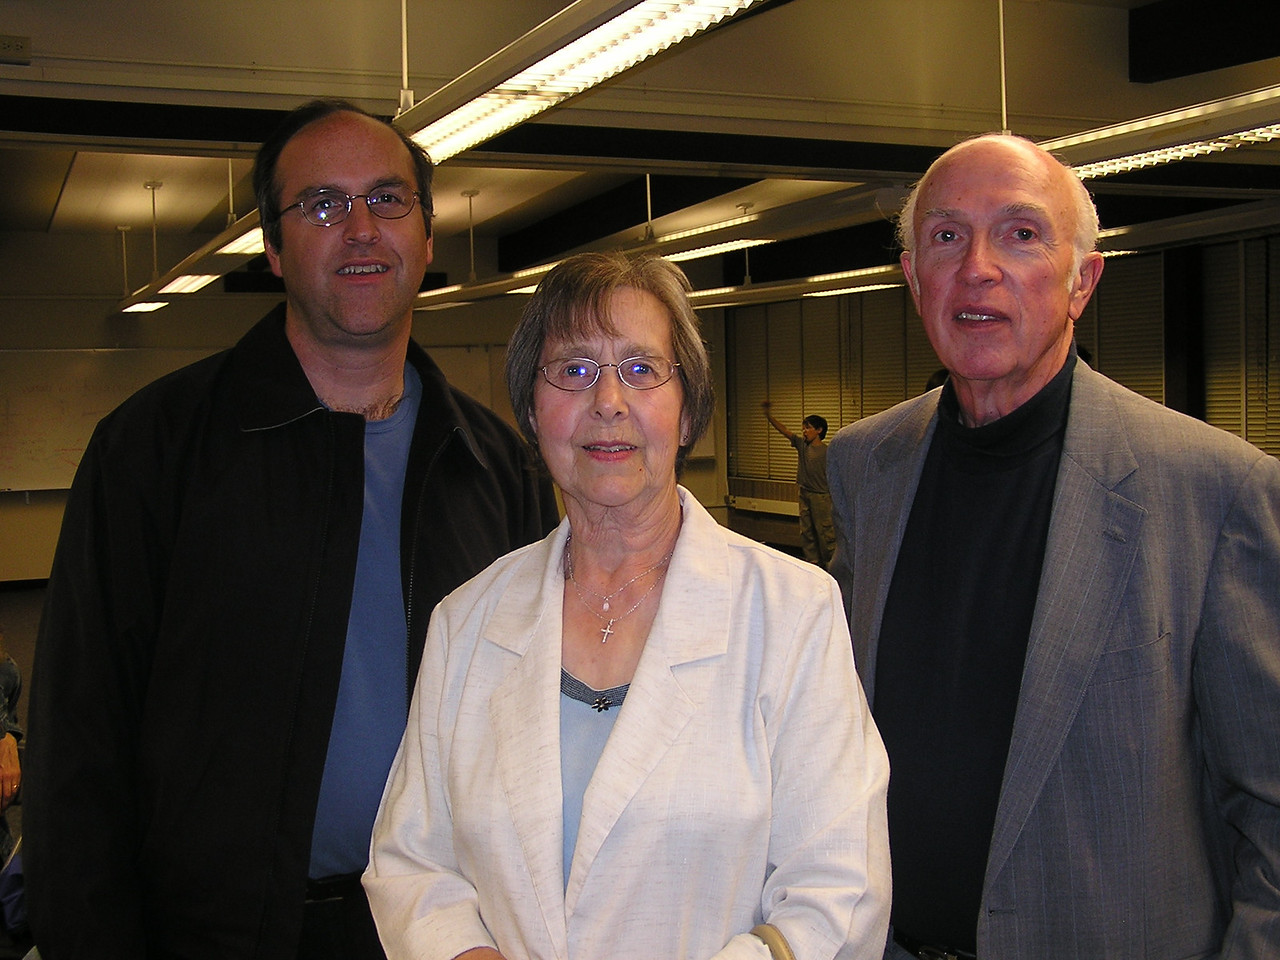 (L to R) Martin's cousin Gary Simmons and Martin's Aunt Mary and Uncle Carl Simmons.  Gary is their 5th son.